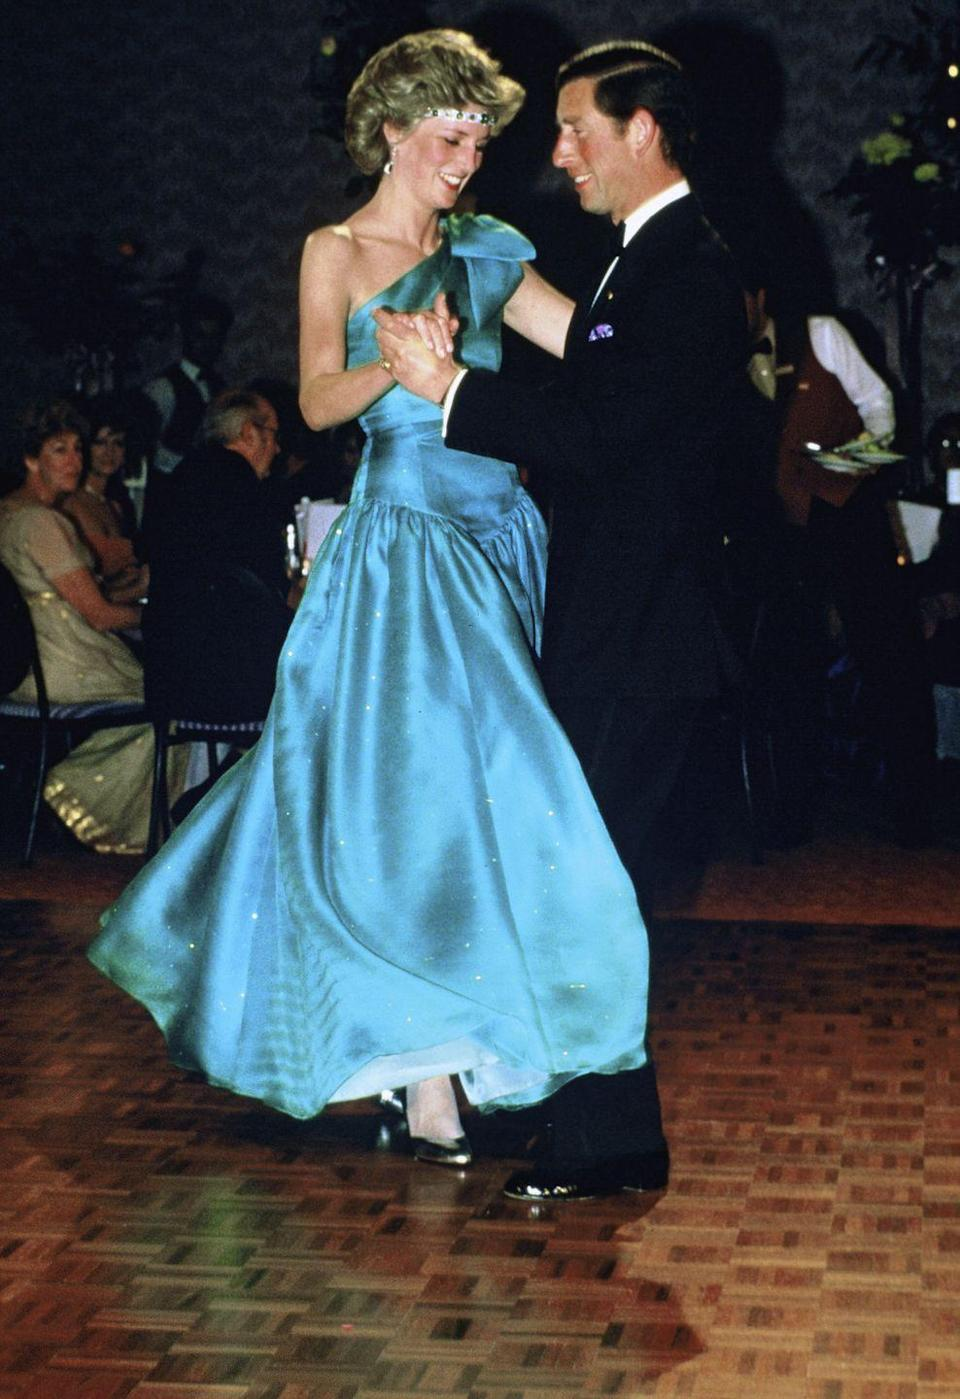 "<p>For a 1985 appearance in Melbourne, Australia, the <a href=""http://www.goodhousekeeping.com/life/entertainment/news/a36449/princess-diana-dresses-kensington-palace/"" rel=""nofollow noopener"" target=""_blank"" data-ylk=""slk:fashion icon"" class=""link rapid-noclick-resp"">fashion icon</a> accented her gown with an emerald-and-diamond choker — but she wore it as a tiara. We're pretty sure that wasn't quite how <a href=""http://www.goodhousekeeping.com/life/entertainment/news/a33950/queen-elizabeth-princess-diana-book/"" rel=""nofollow noopener"" target=""_blank"" data-ylk=""slk:the Queen"" class=""link rapid-noclick-resp"">the Queen</a>, who gave the necklace as a wedding gift, imagined the art deco treasure being displayed.<br></p>"